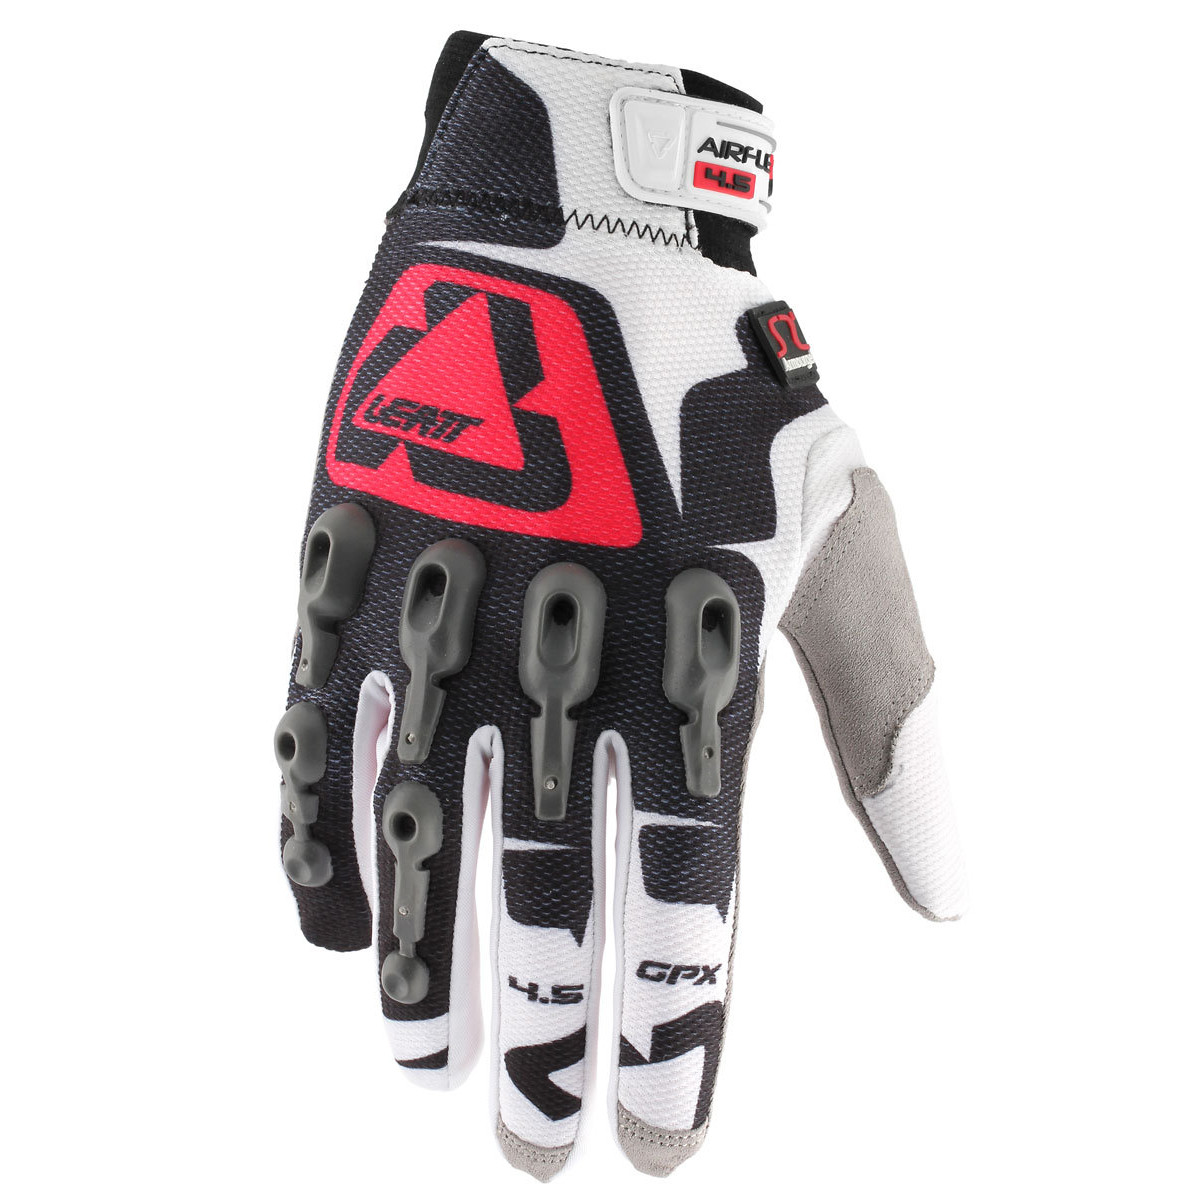 Leatt 4.5 Lite Gloves 2016-leatt-gpx-4-5-lite-gloves-mcss